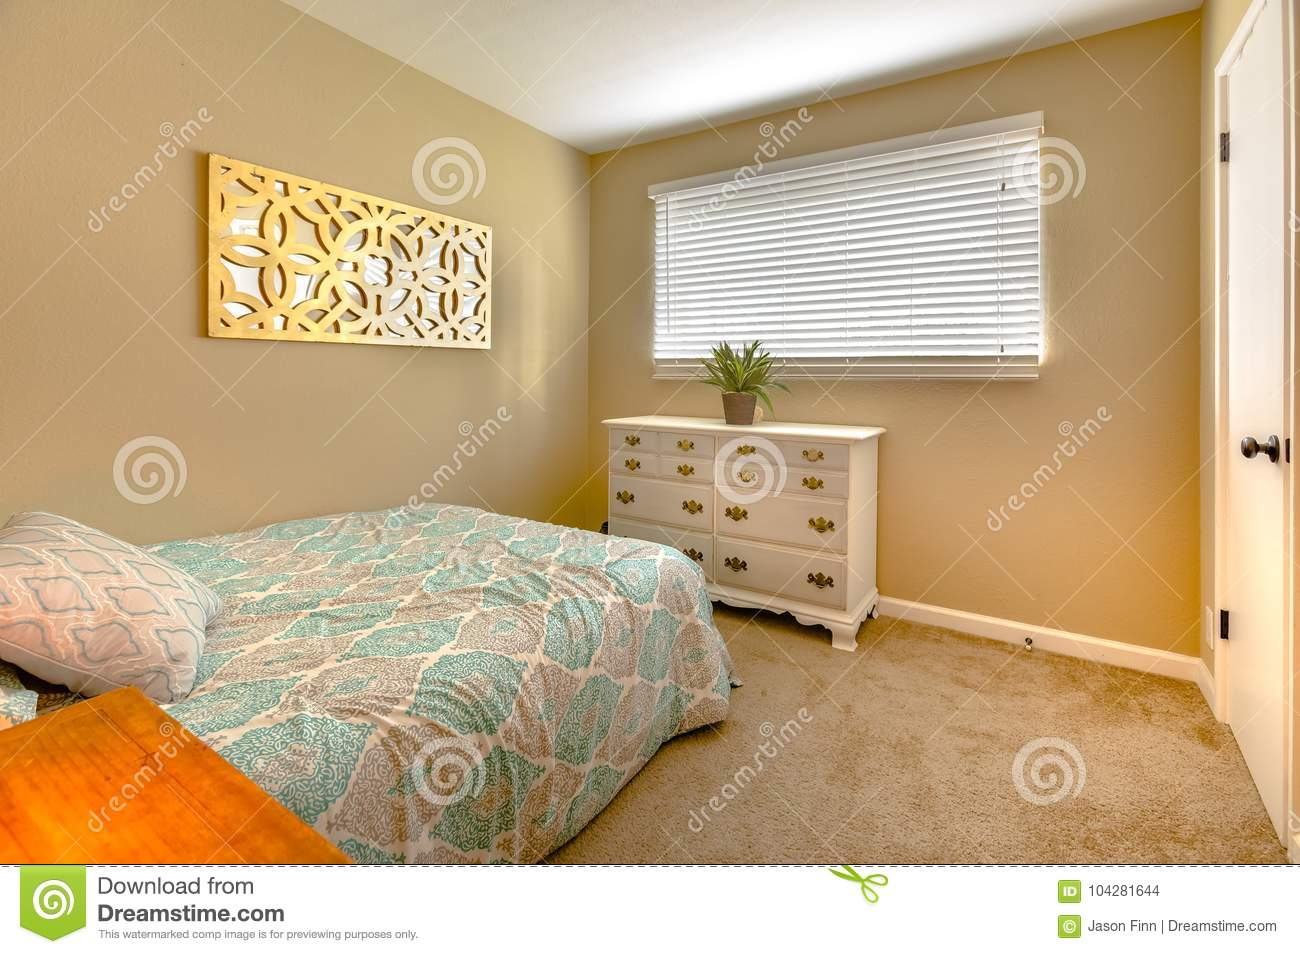 Cozy Bedroom With Twin Bed Carpet And Indoor Plant On The Dress Stock Photo Image Of Contemporary Doublebed 104281644